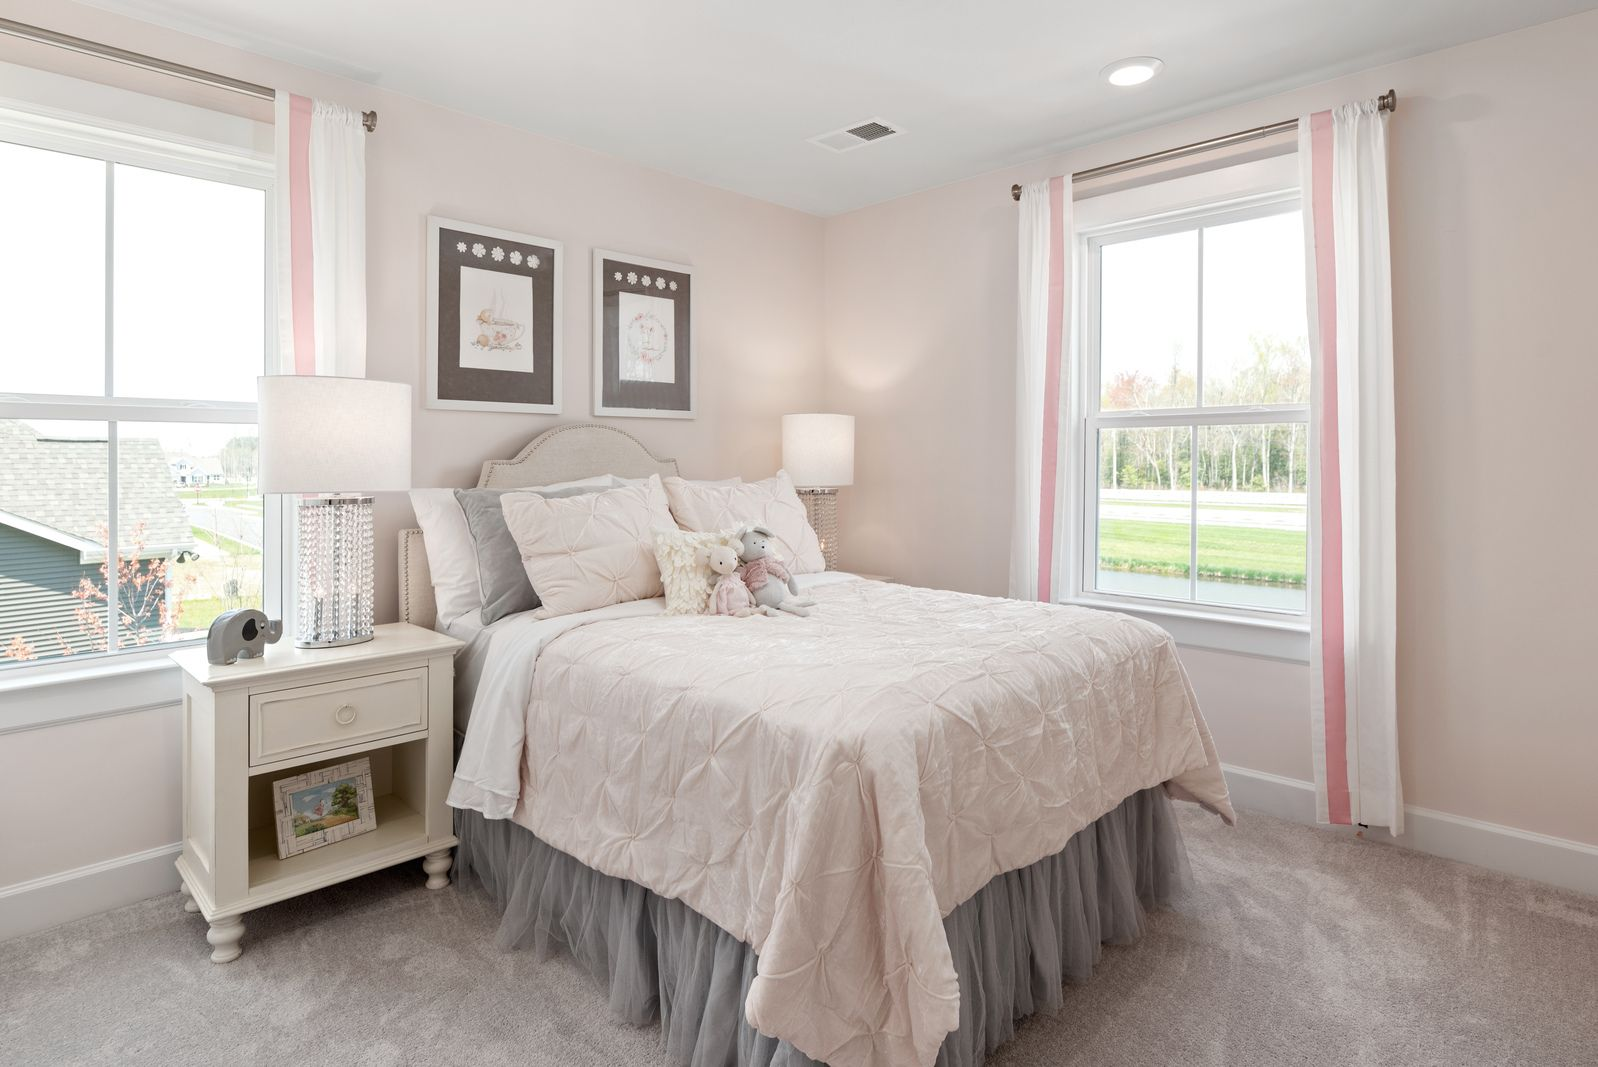 Bedroom featured in the Stapleton By HeartlandHomes in Pittsburgh, PA